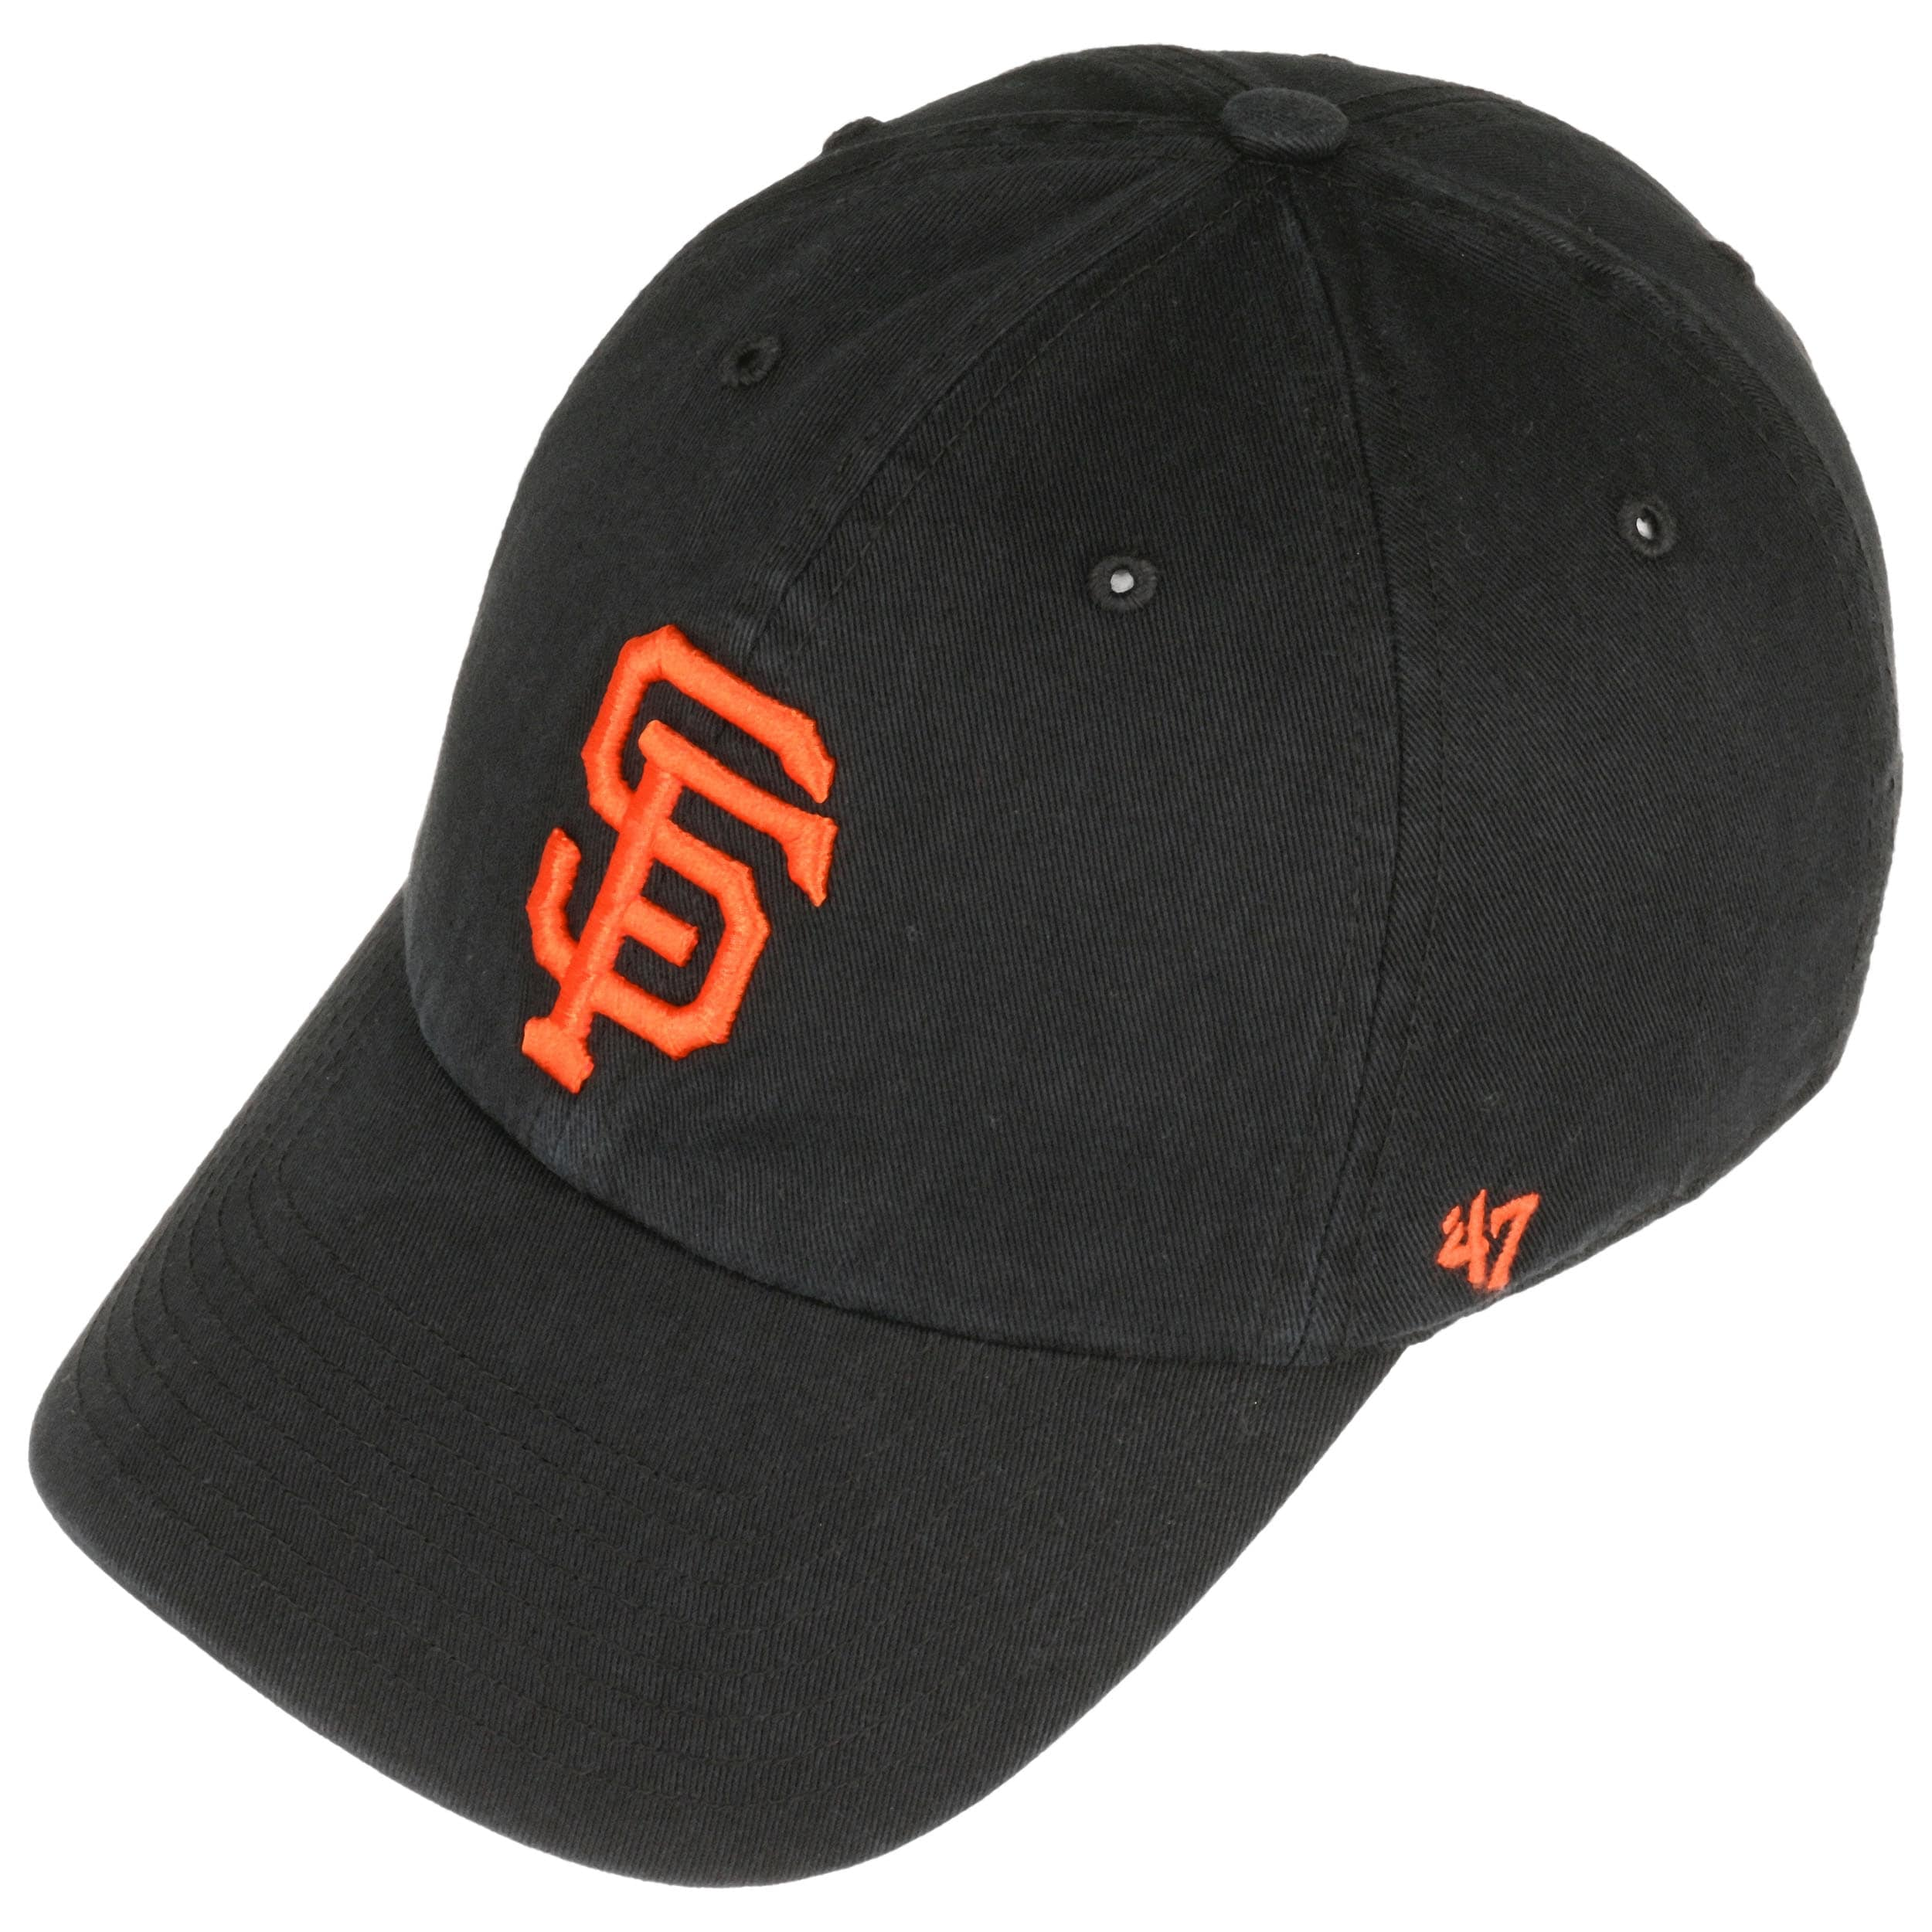 65eda17a ... clean up relaxed slouch hat; denmark 47 brand san francisco giants hat  line vector 4b21c 7230f